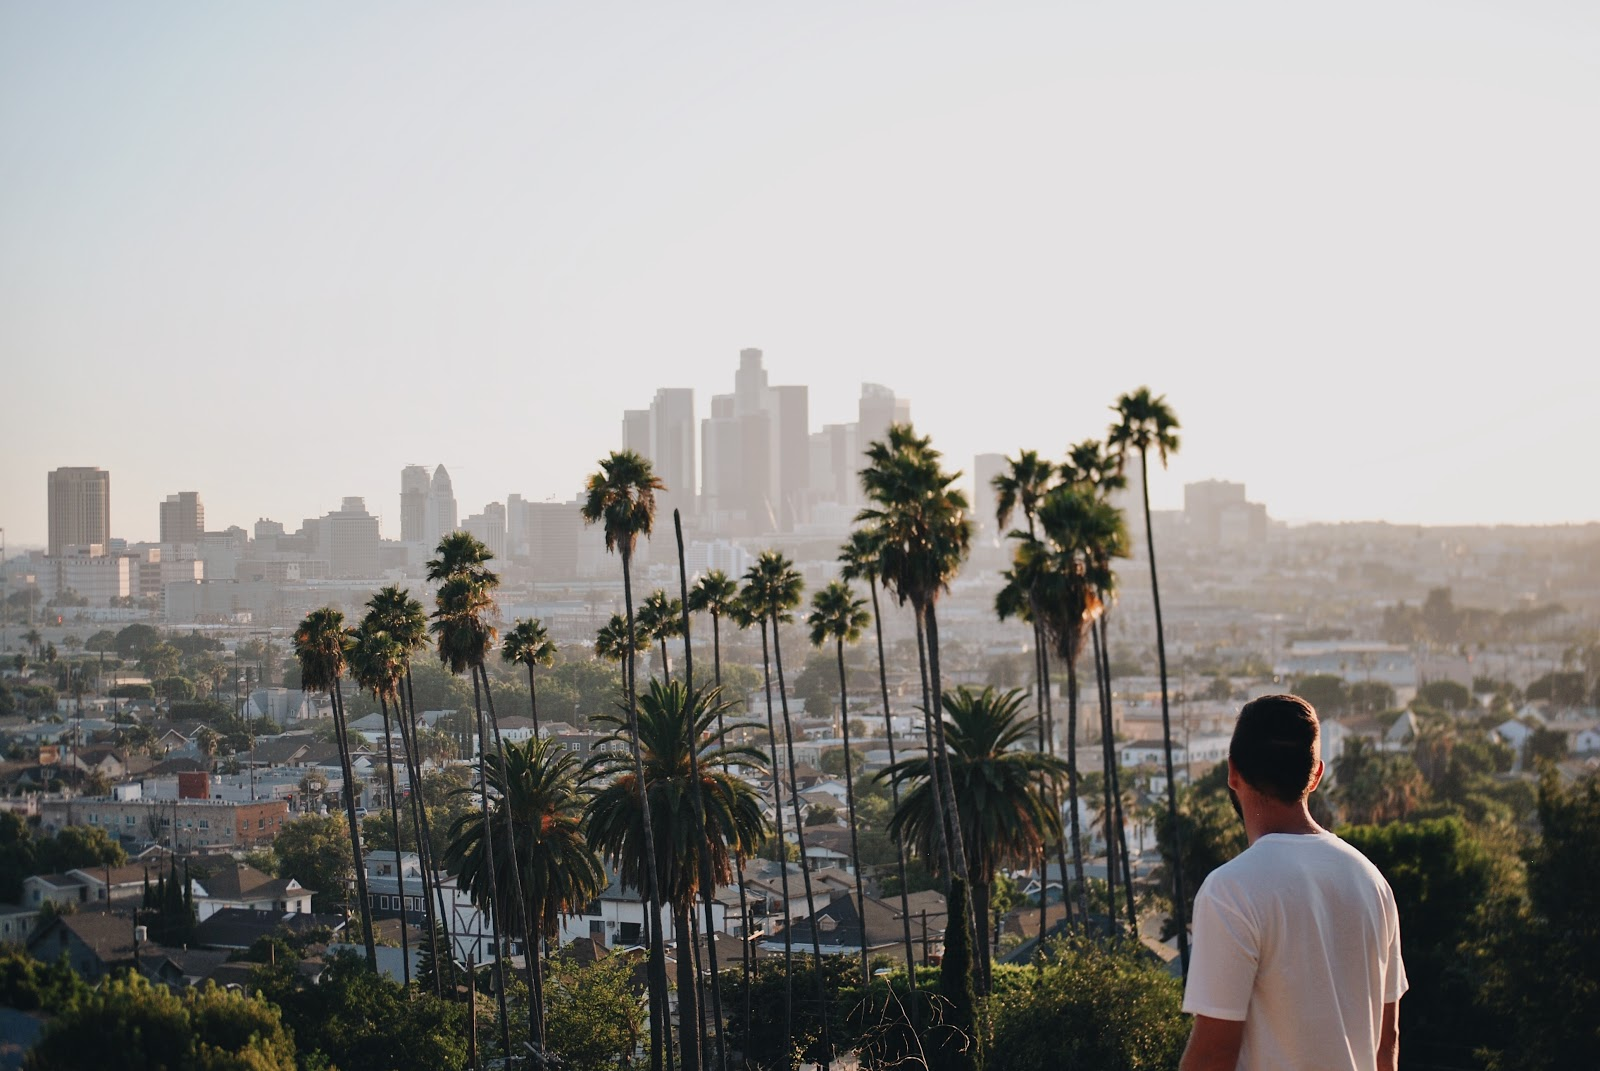 Guy staring at palm trees in LA